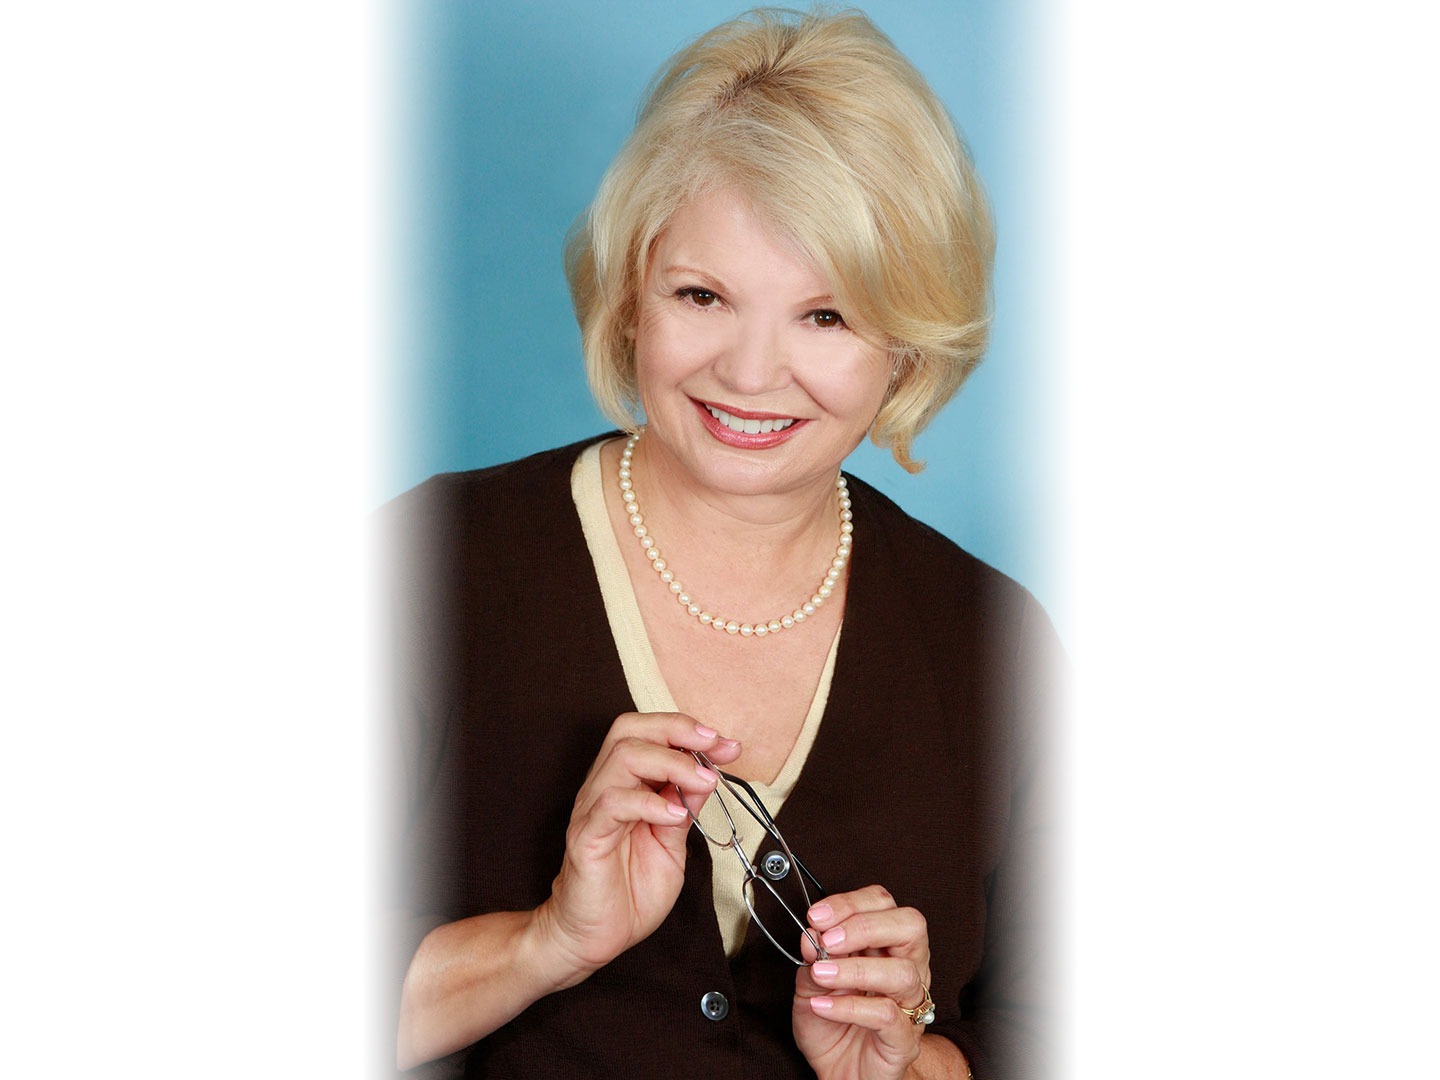 kathygarver_pearls_glasses_w1440.jpg